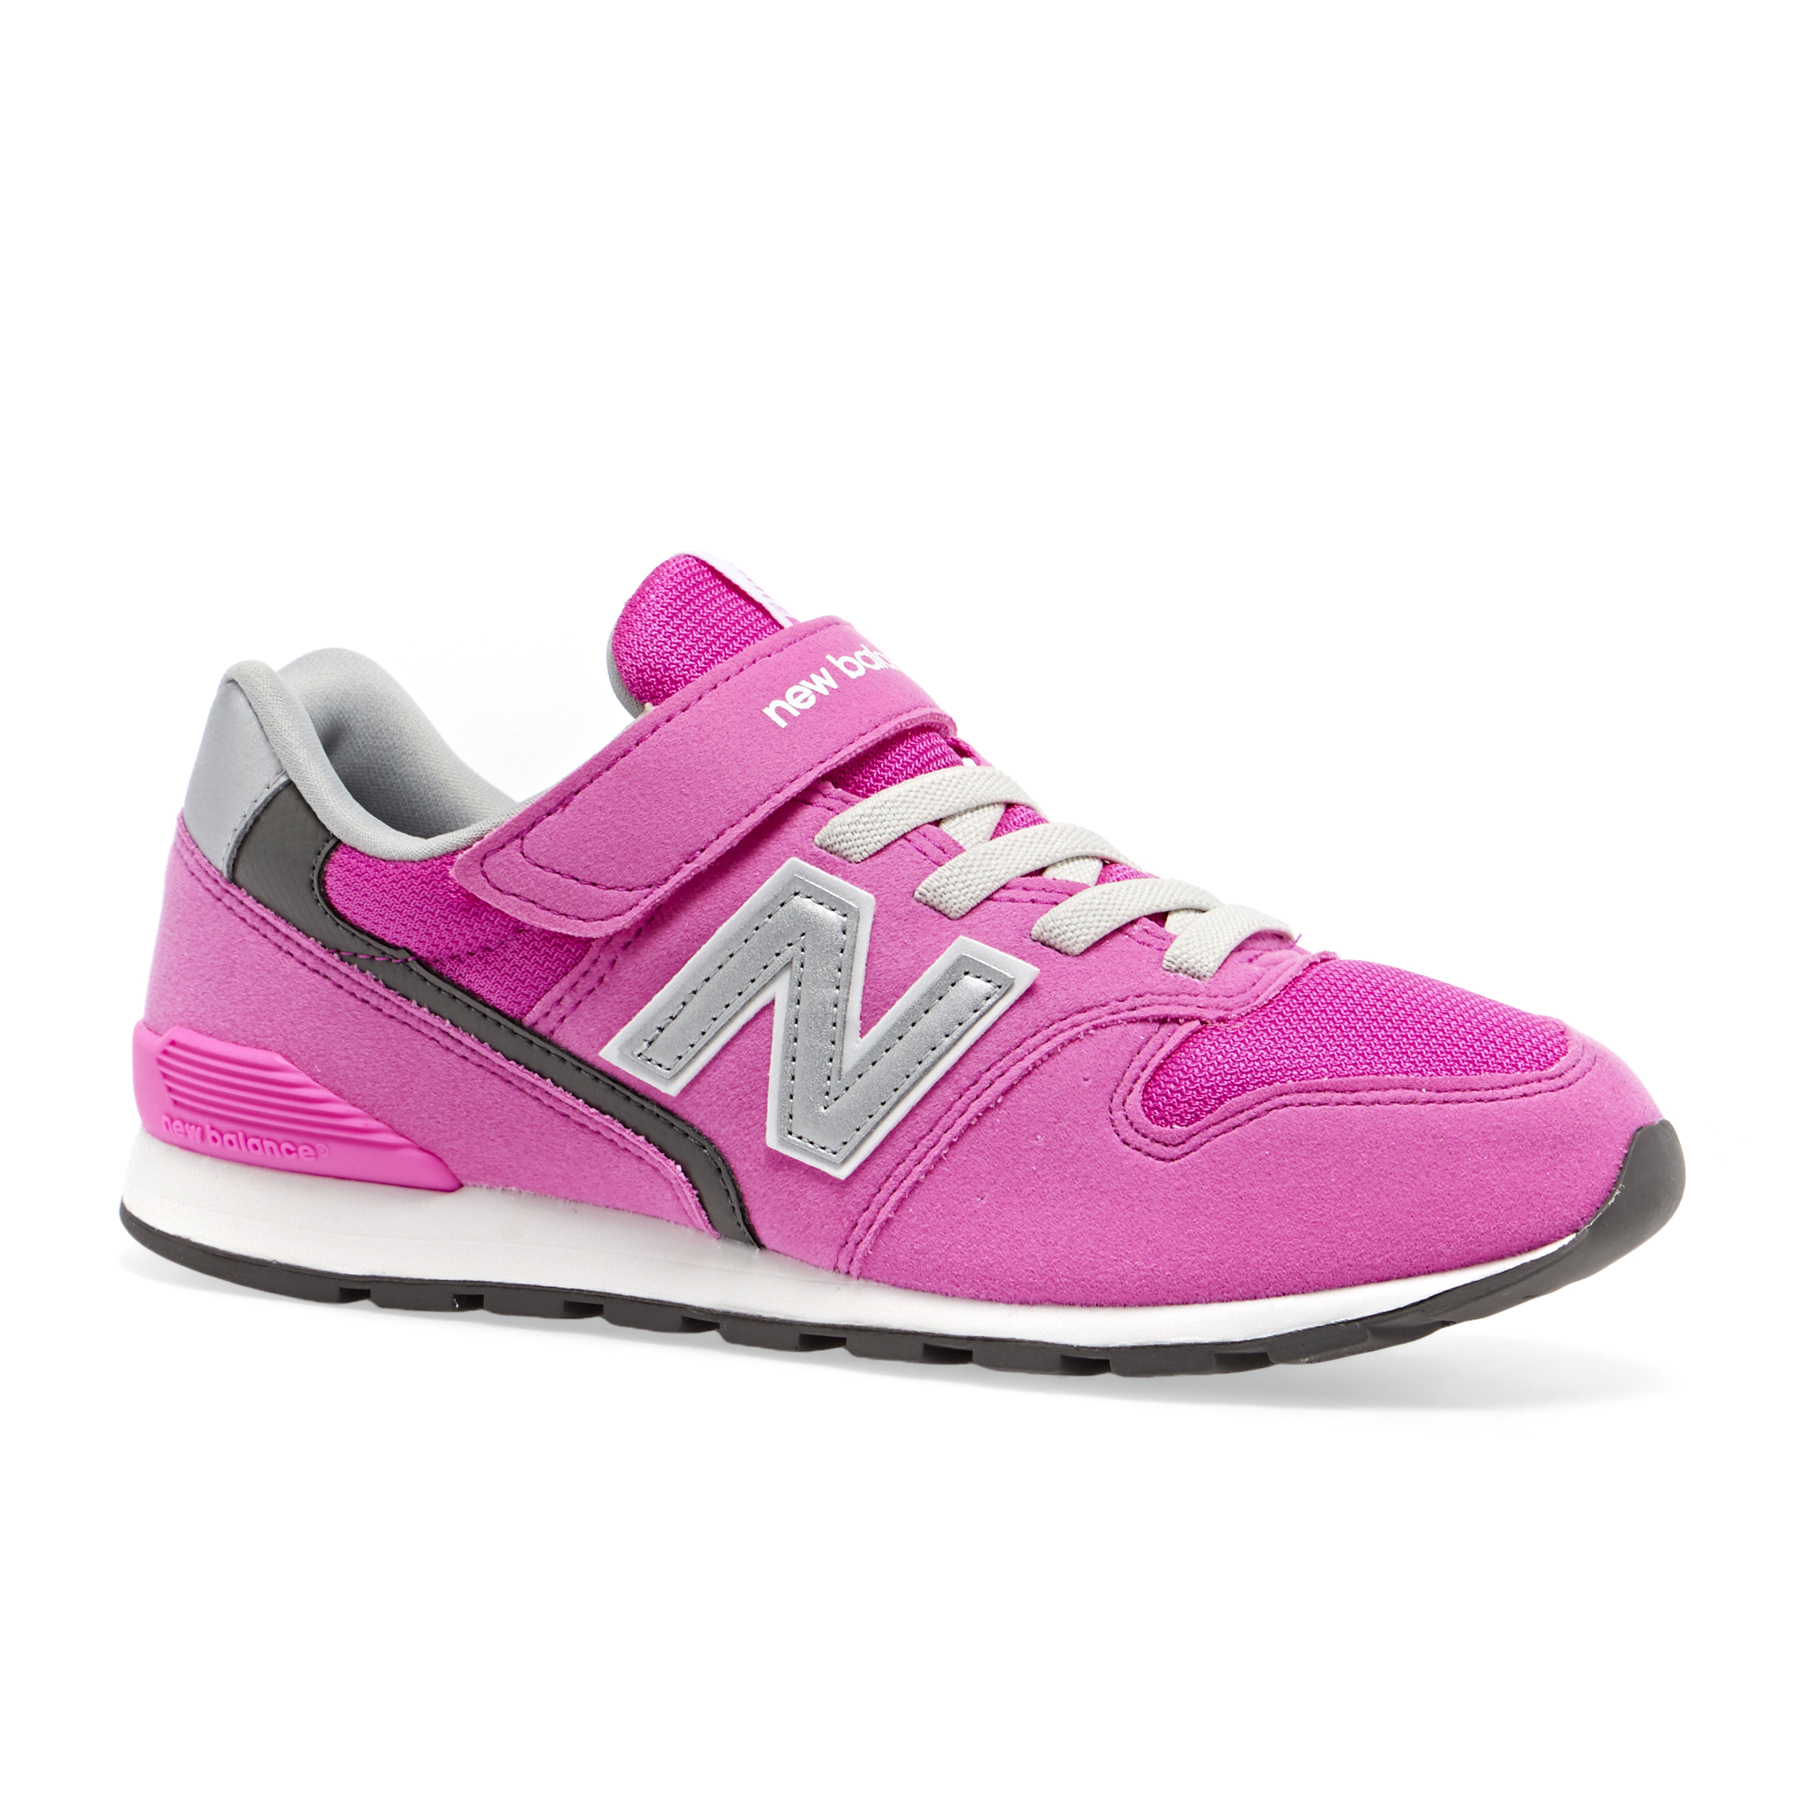 New Balance Kv996 Girls Shoes | Free Delivery Options